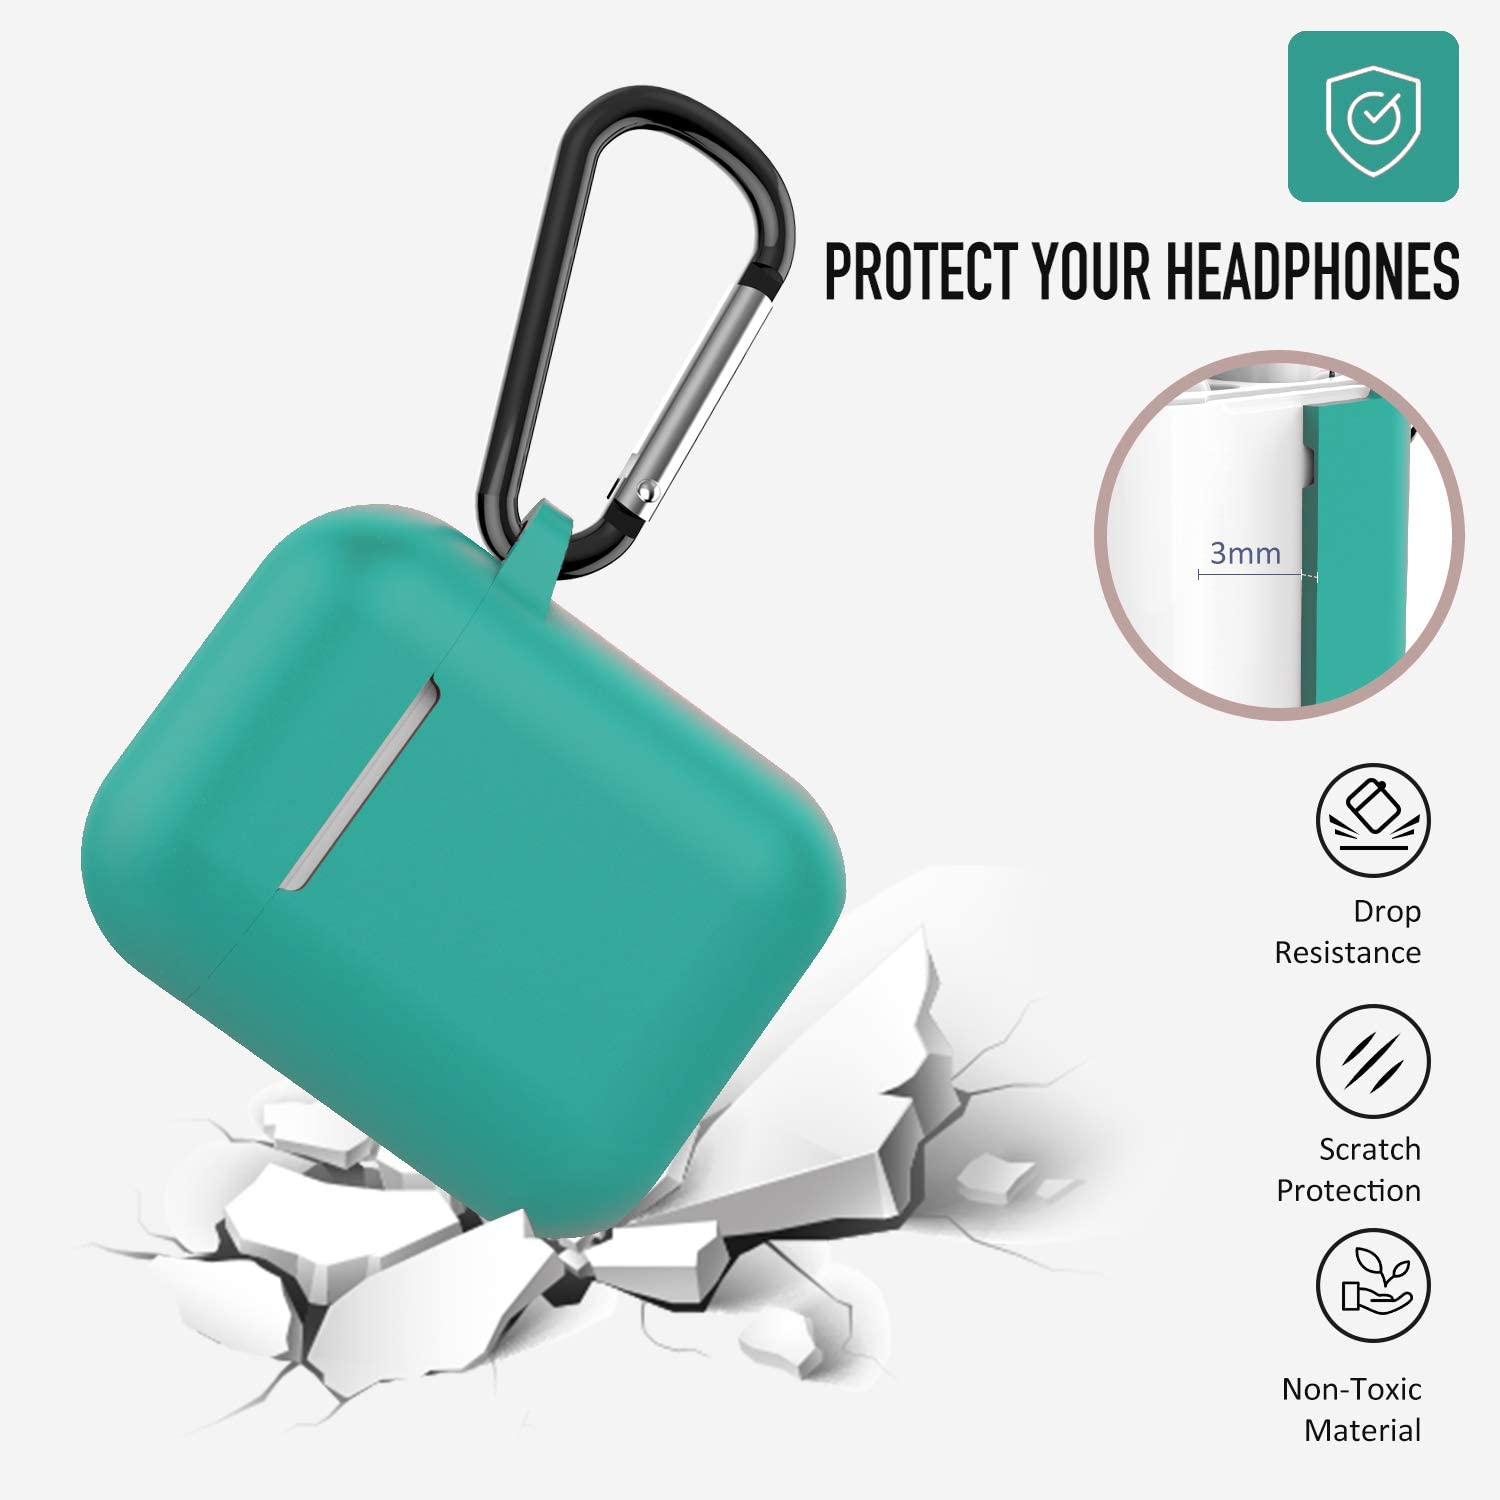 Airpods Case Front LED Not Visible - Blue Coffea AirPods Accessories Shockproof Case Cover Portable /& Protective Silicone Skin Cover Case for Airpods 2 /& 1